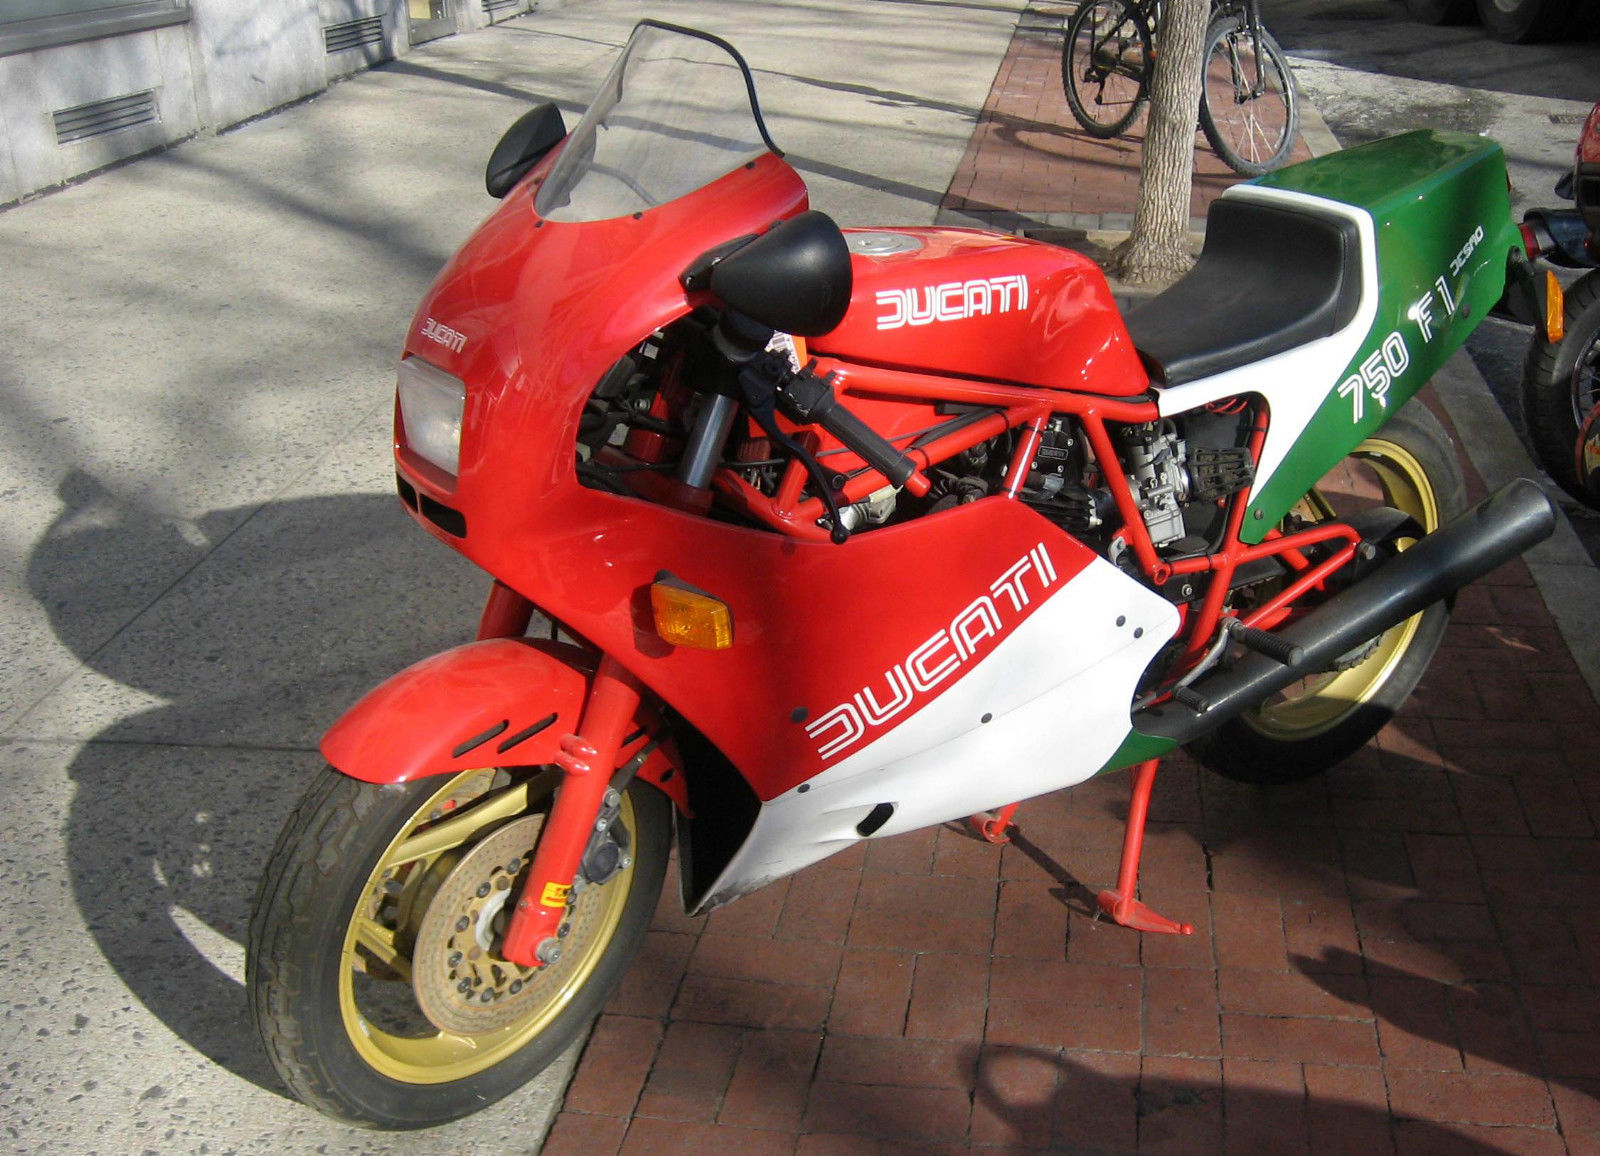 a shot at the title: 1985 ducati 750 f1 - rare sportbikes for sale